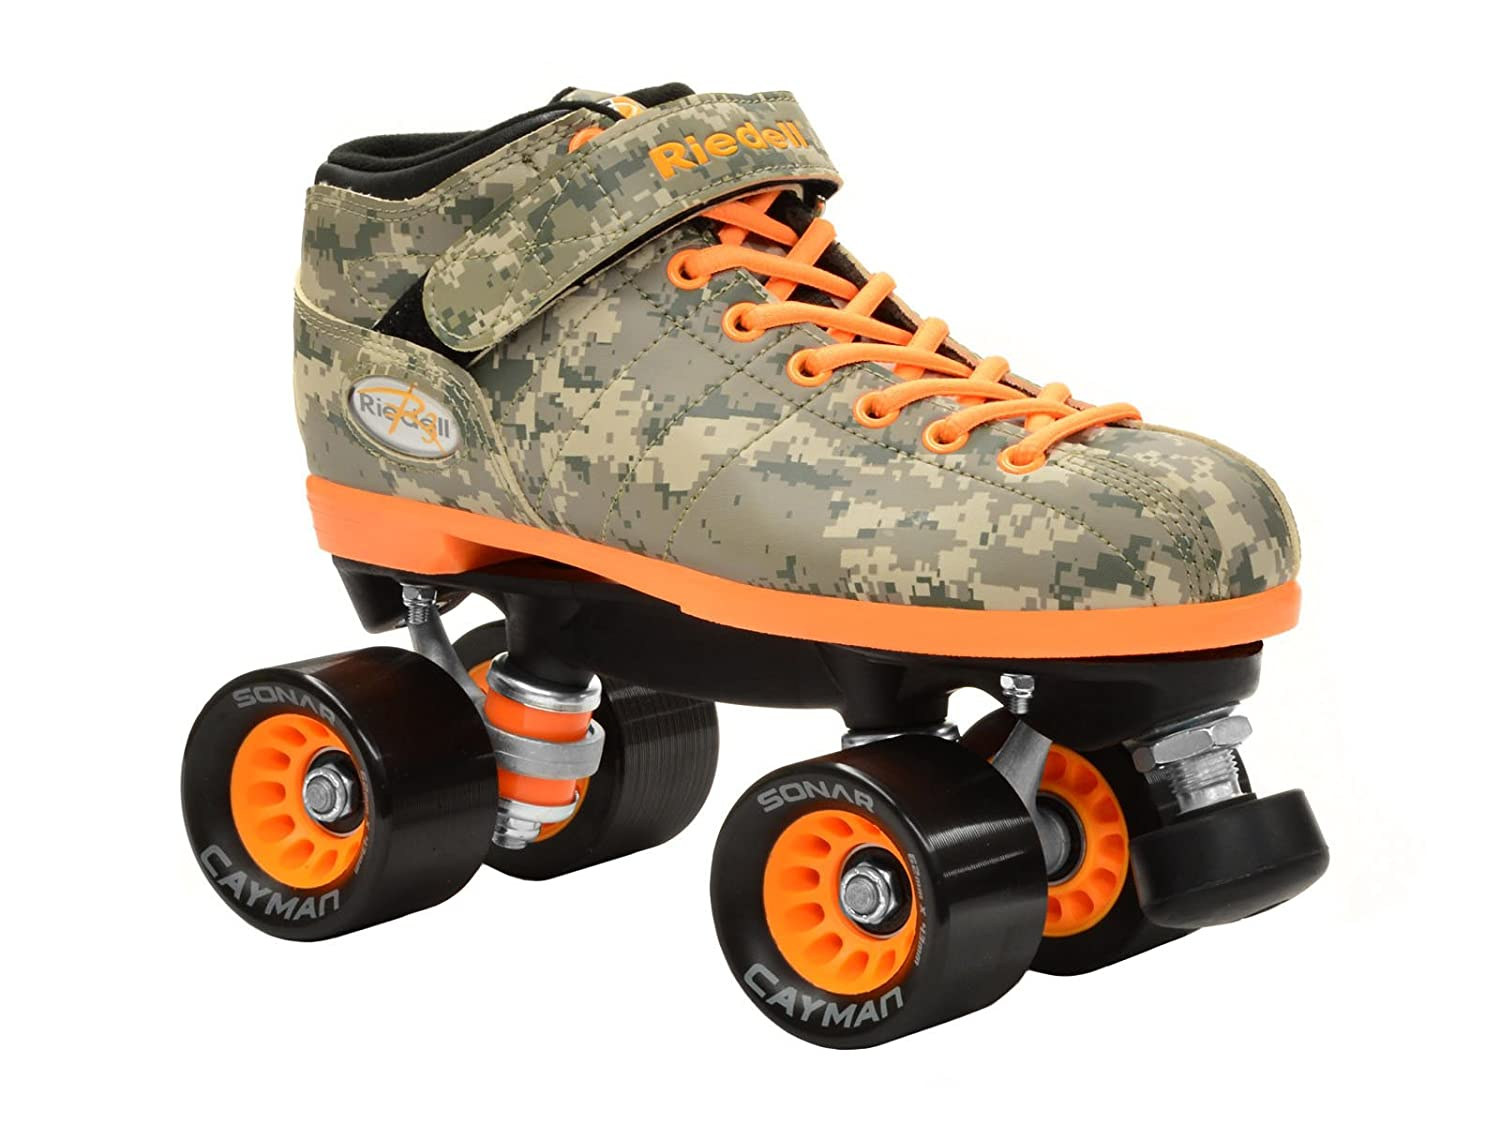 新しいRiedell r3デジタルカモQuad Roller DerbyスピードSkates Mens 7 / Ladies 8 R Dart  Mens 7 / Ladies 8